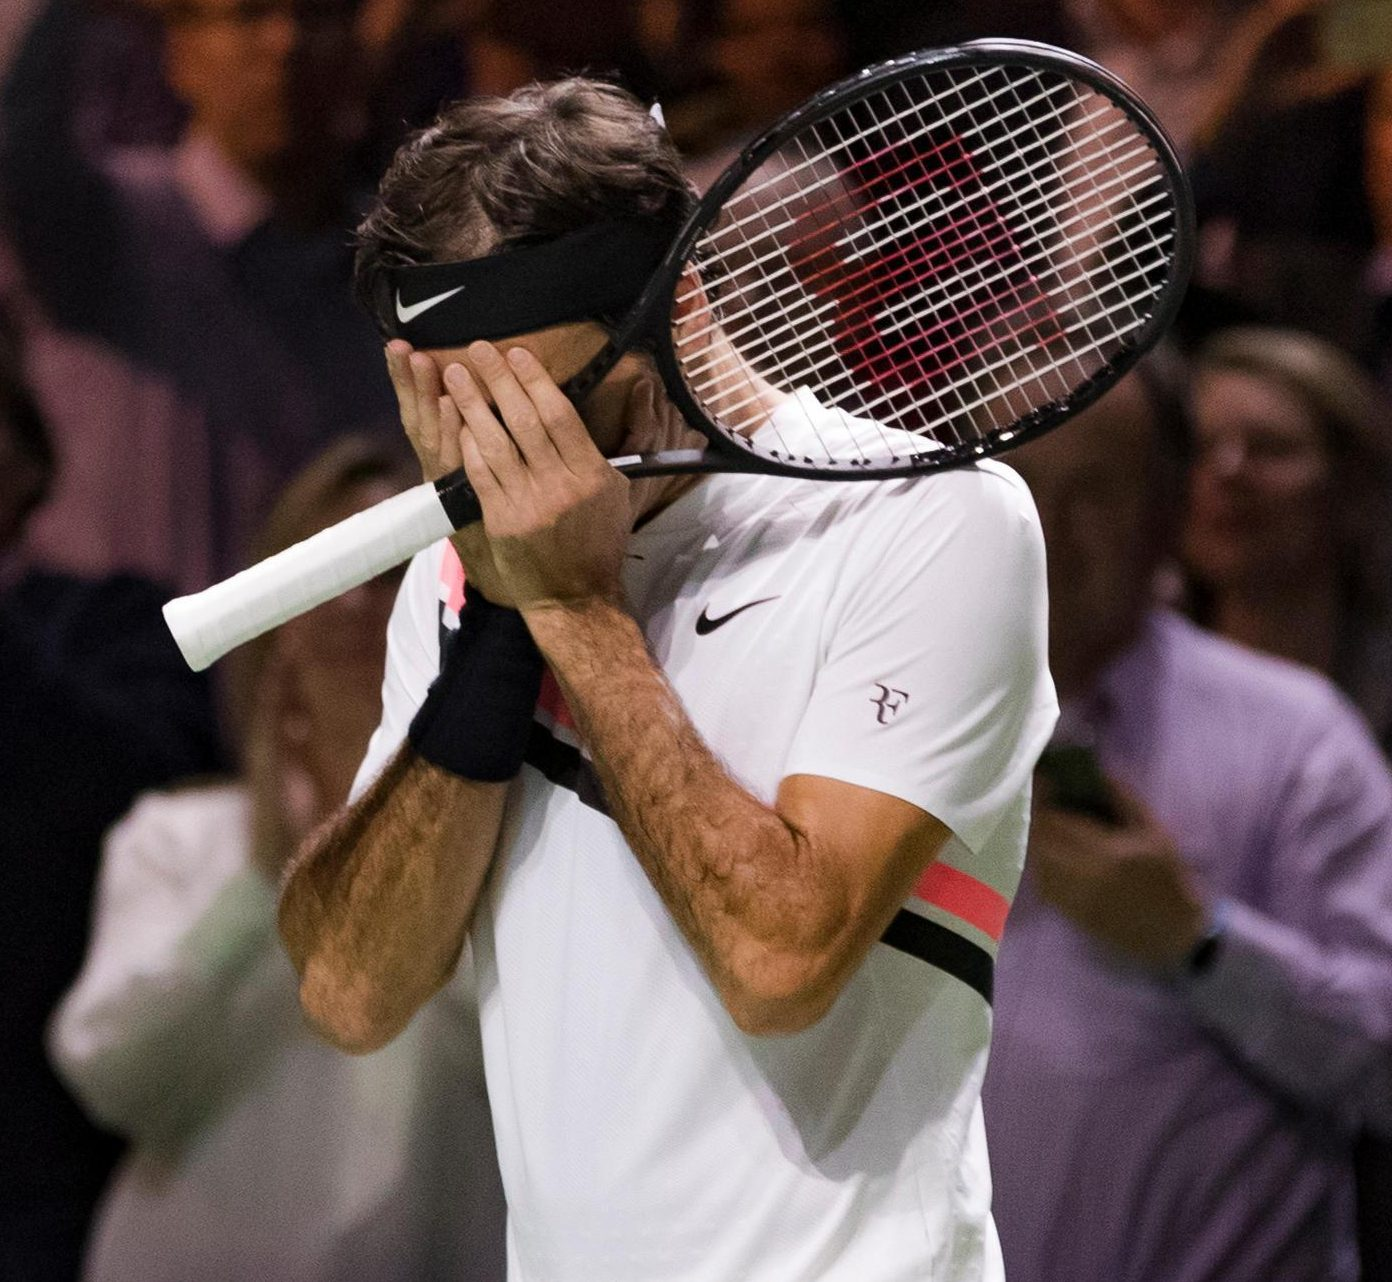 Swiss hero Roger Federer reflects on what he says might be the greatest achievement of his career - topping the world rankings aged 36